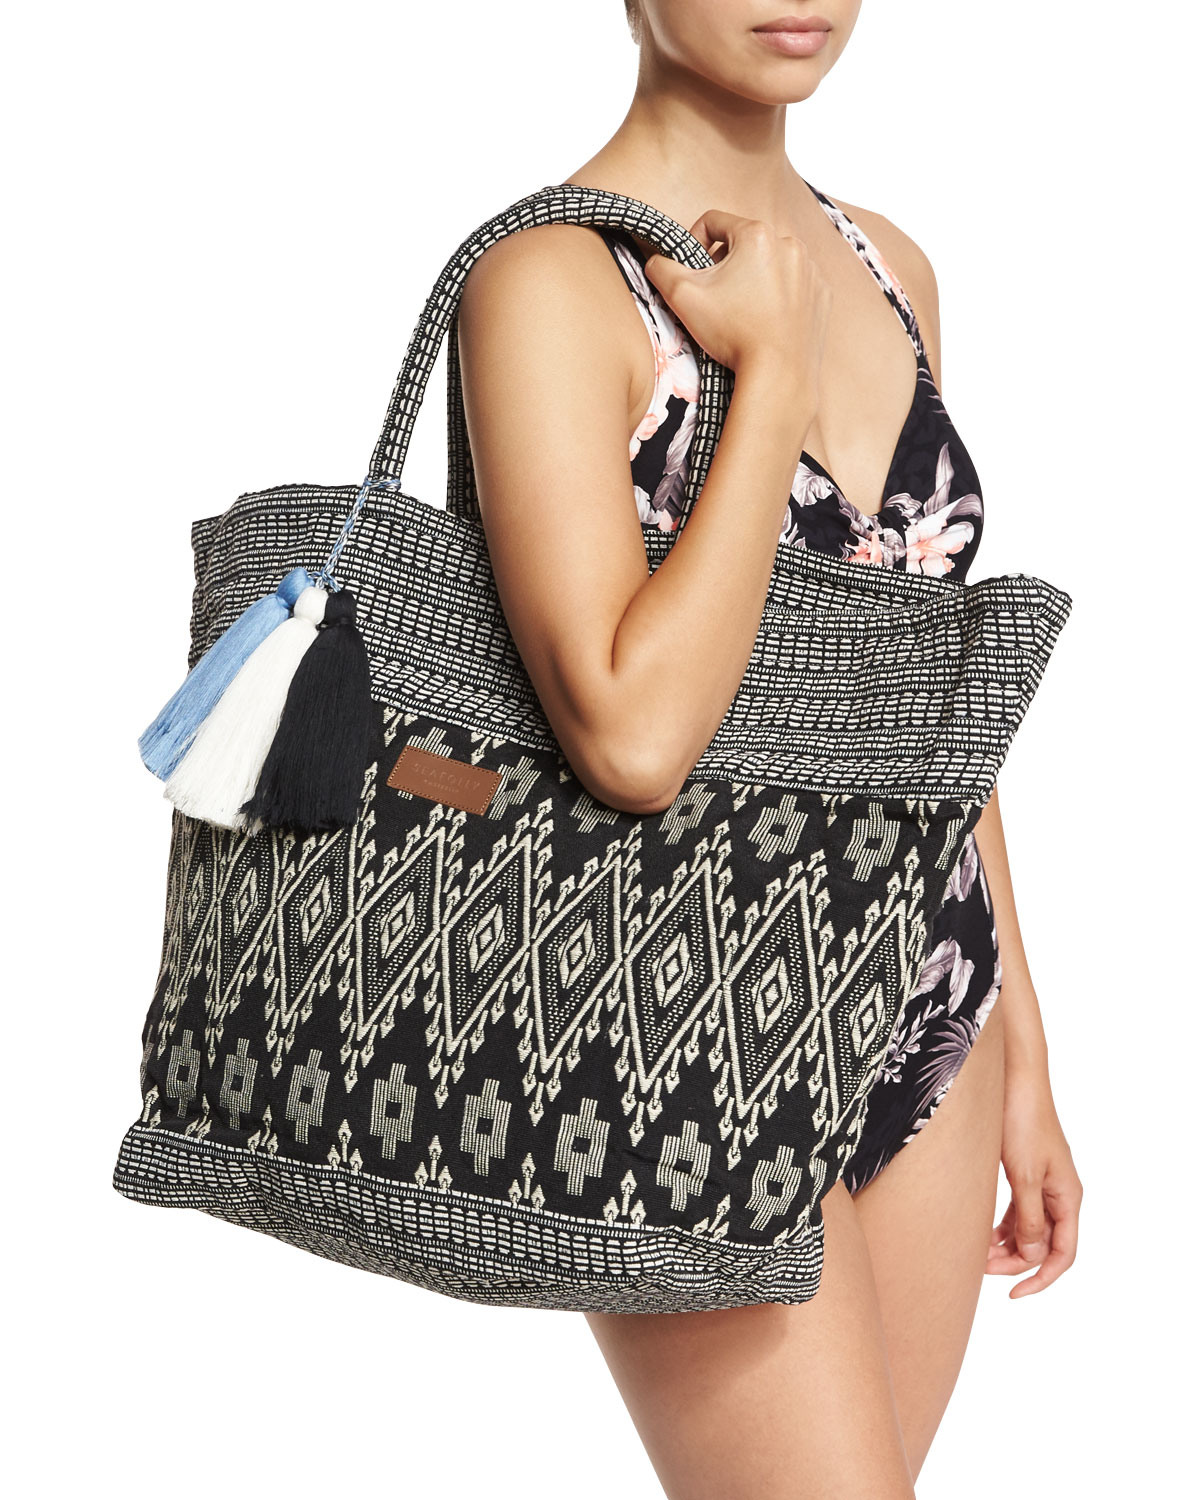 Carried Away Oversized Beach Bags